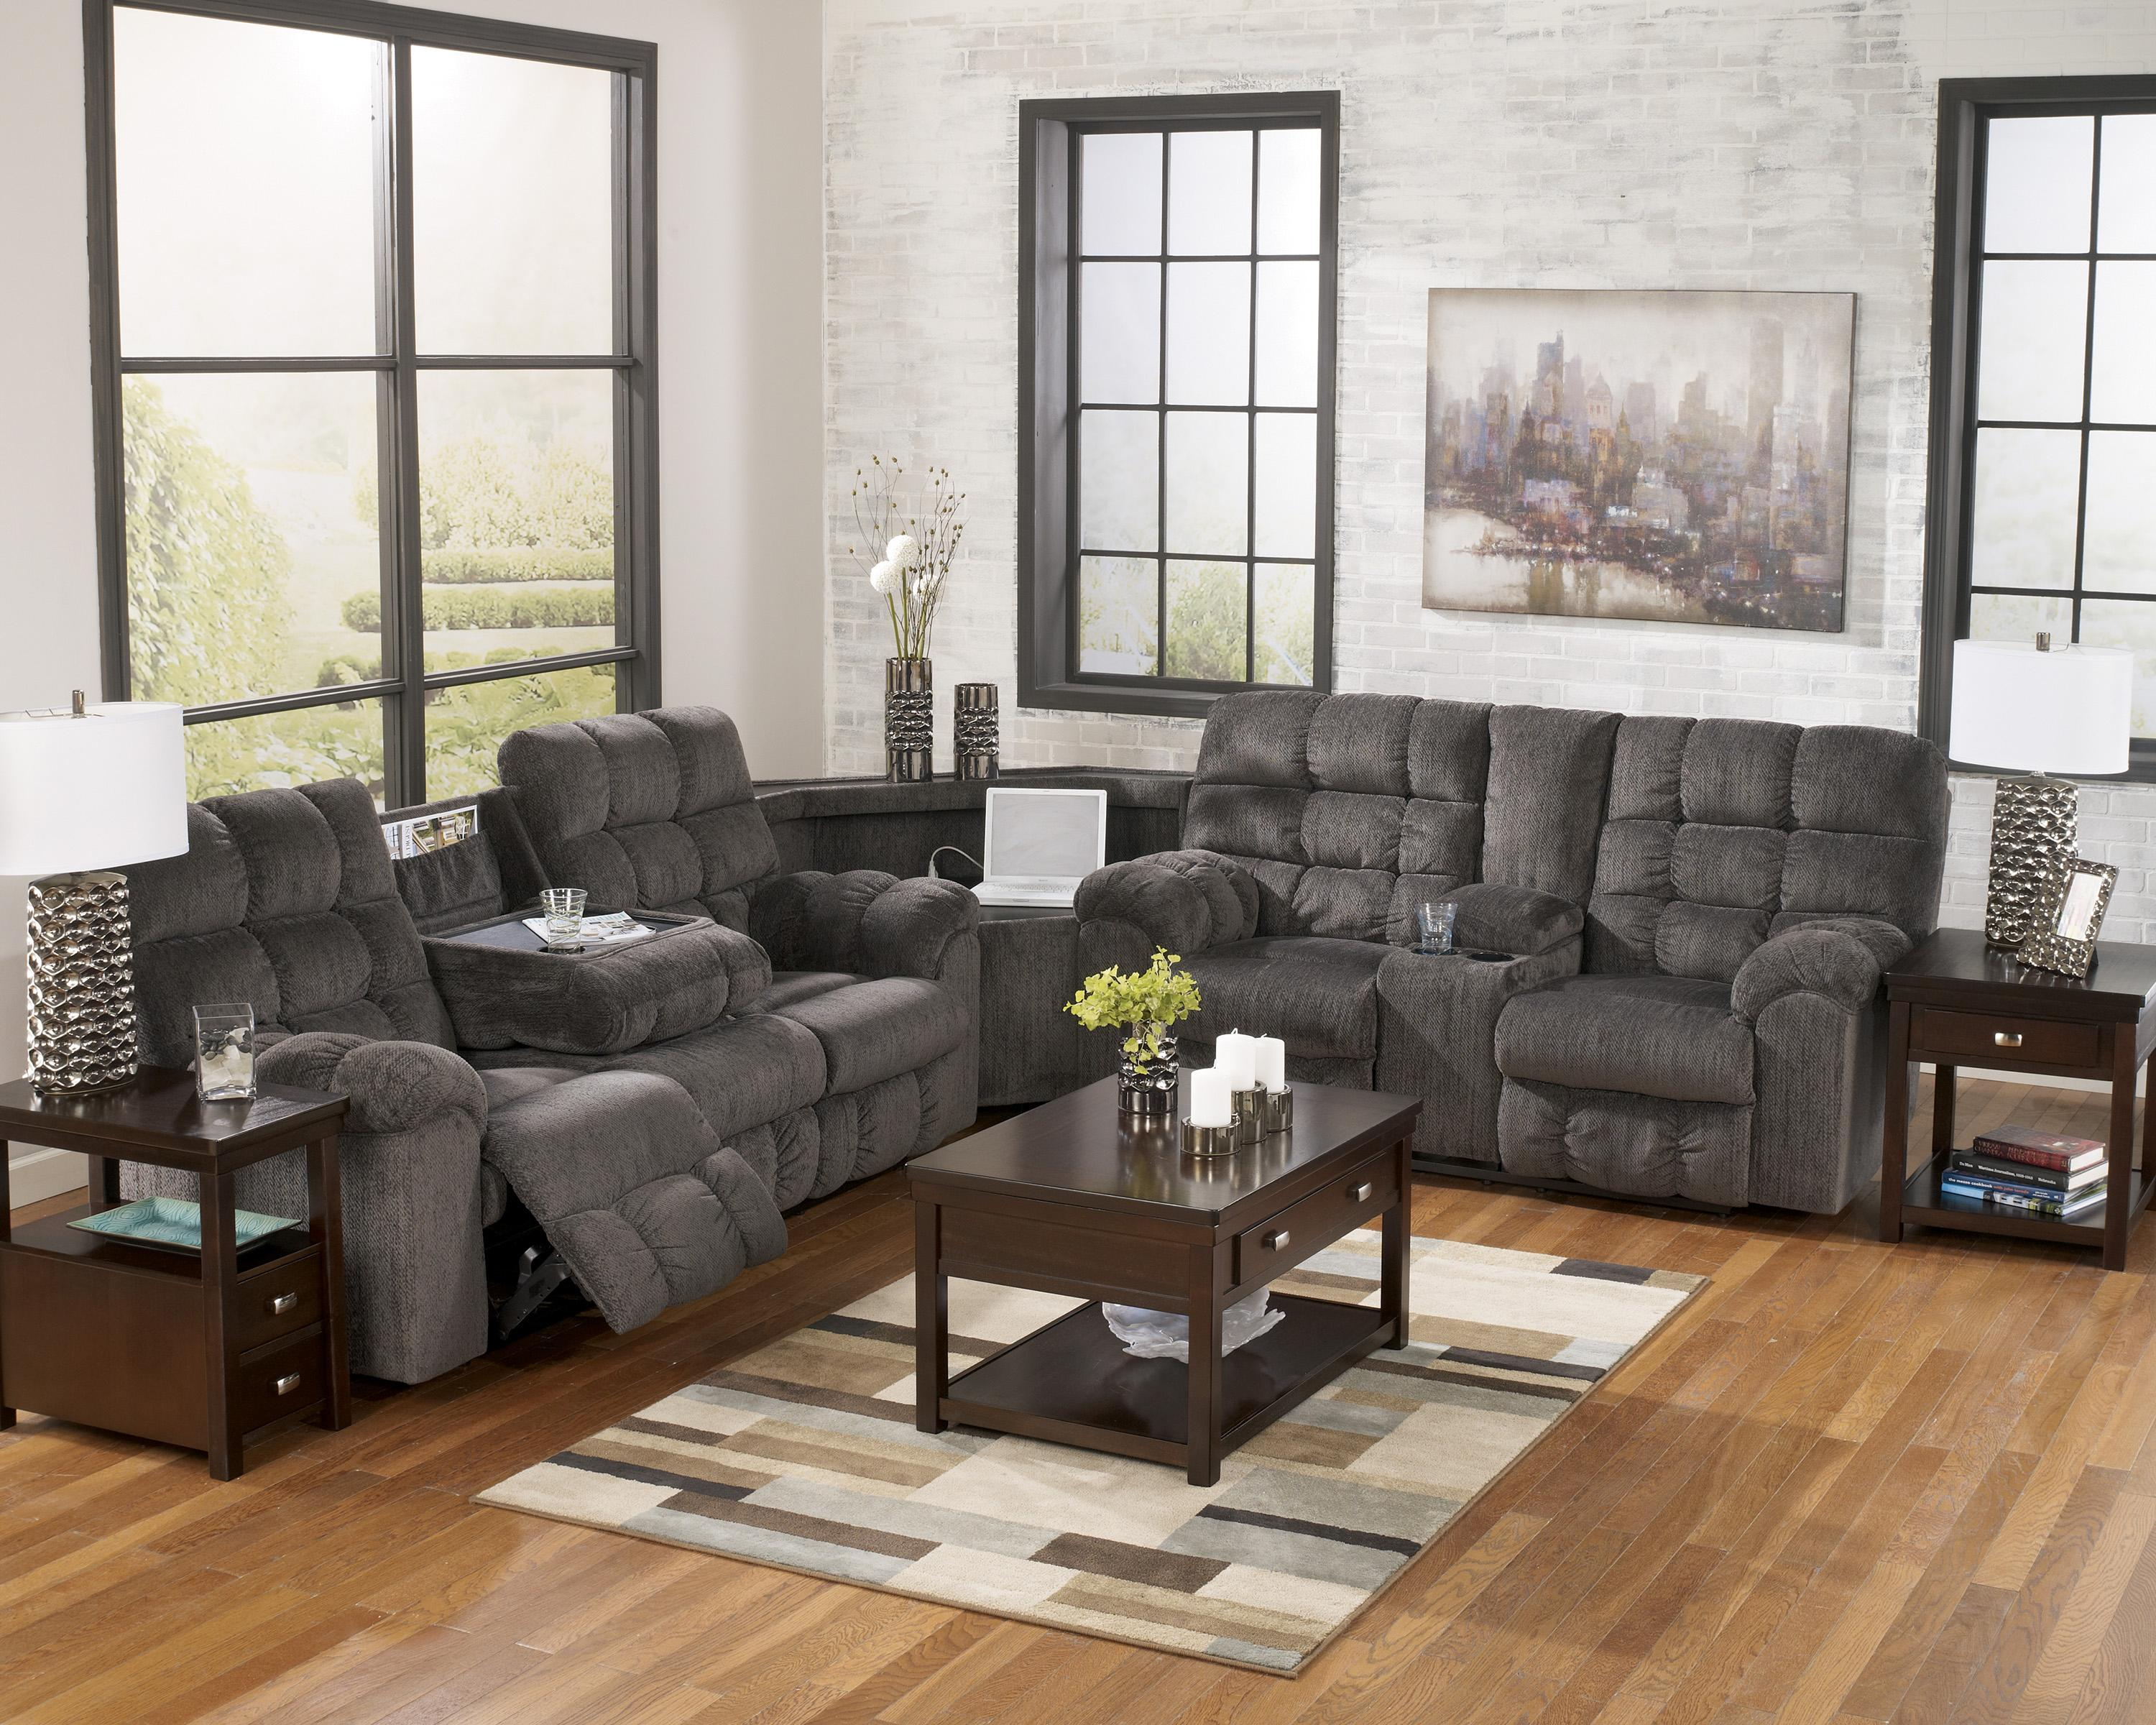 Reclining Sectional Sofa with Right Side Loveseat Cup Holders and Charging Station : reclining sectional with cup holders - Sectionals, Sofas & Couches